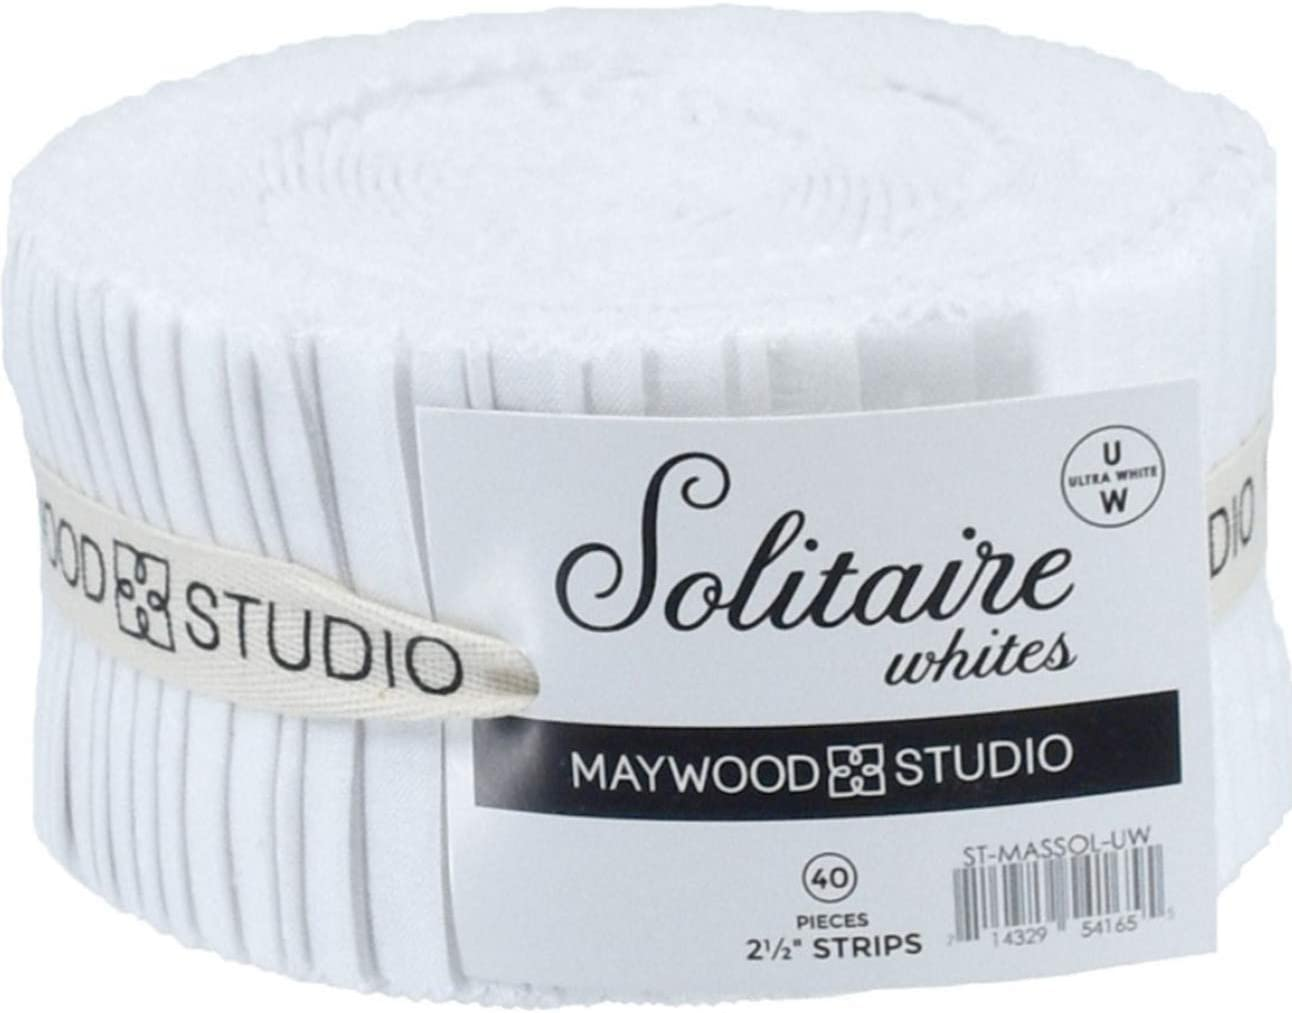 Solitaire Whites Ultra White 40 2.5-inch Strips Jelly Roll Maywood Studio